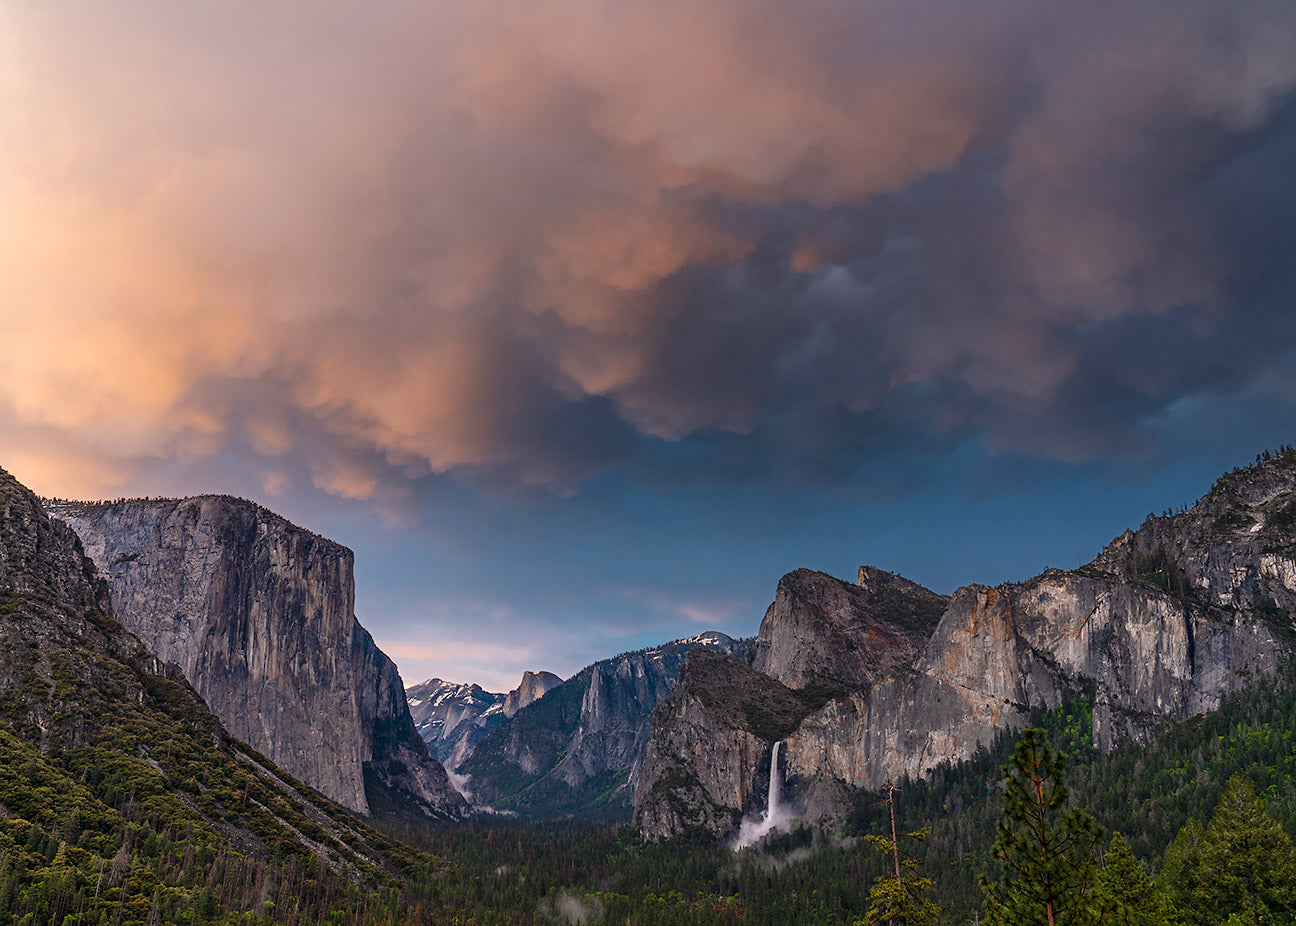 Mammatus Clouds over Yosemite Valley